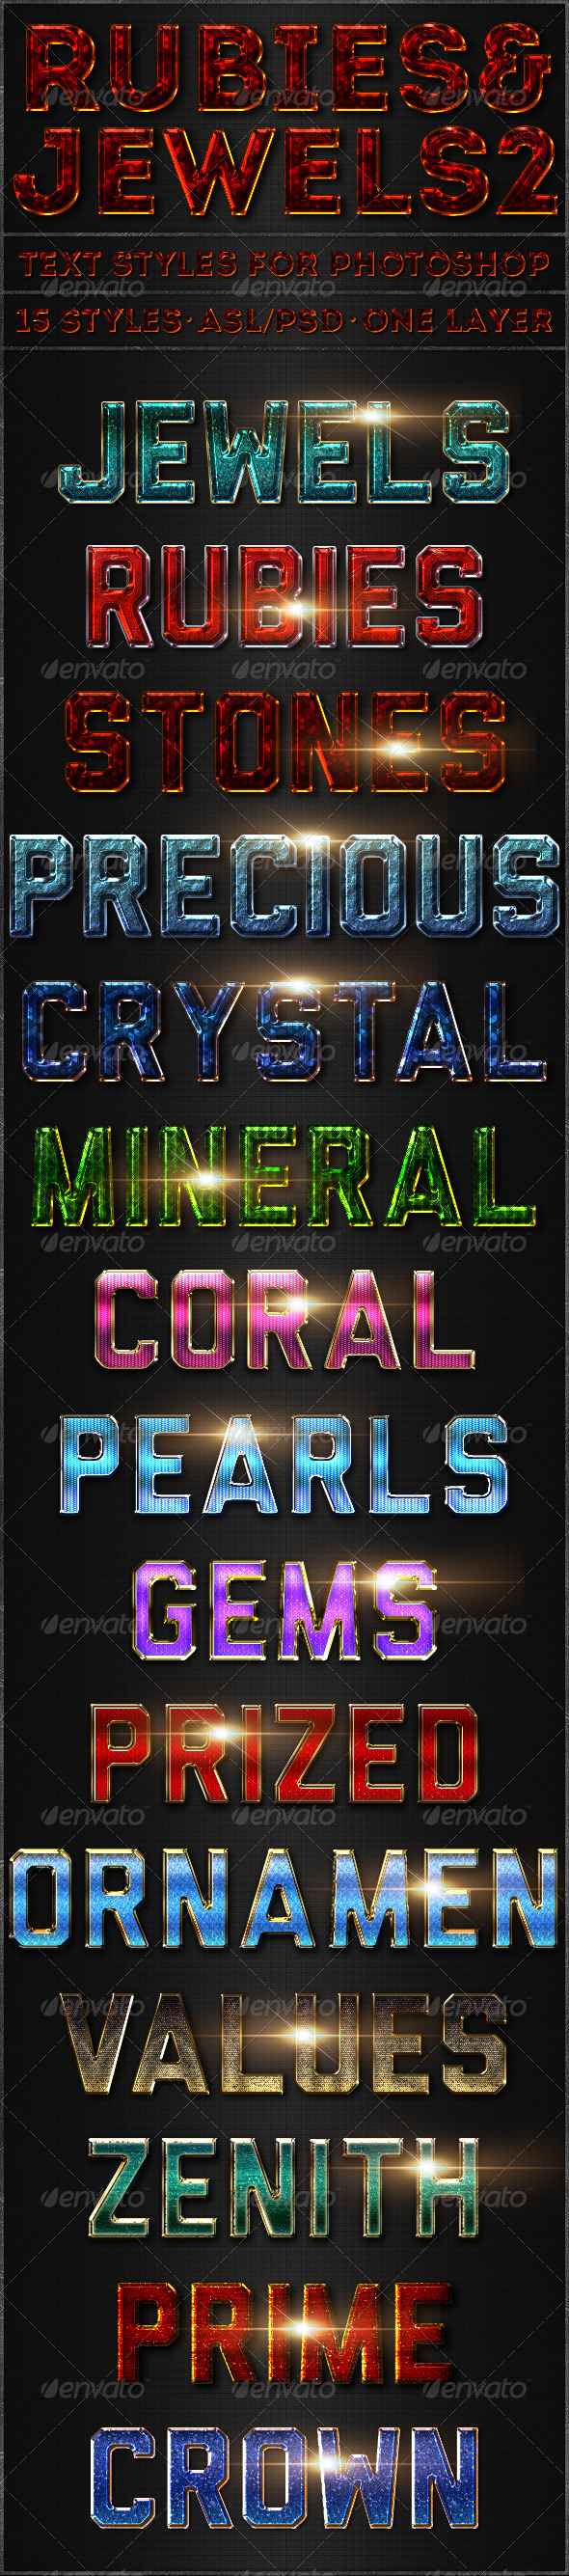 Rubies & Jewels 2 - Text Styles - Text Effects Styles